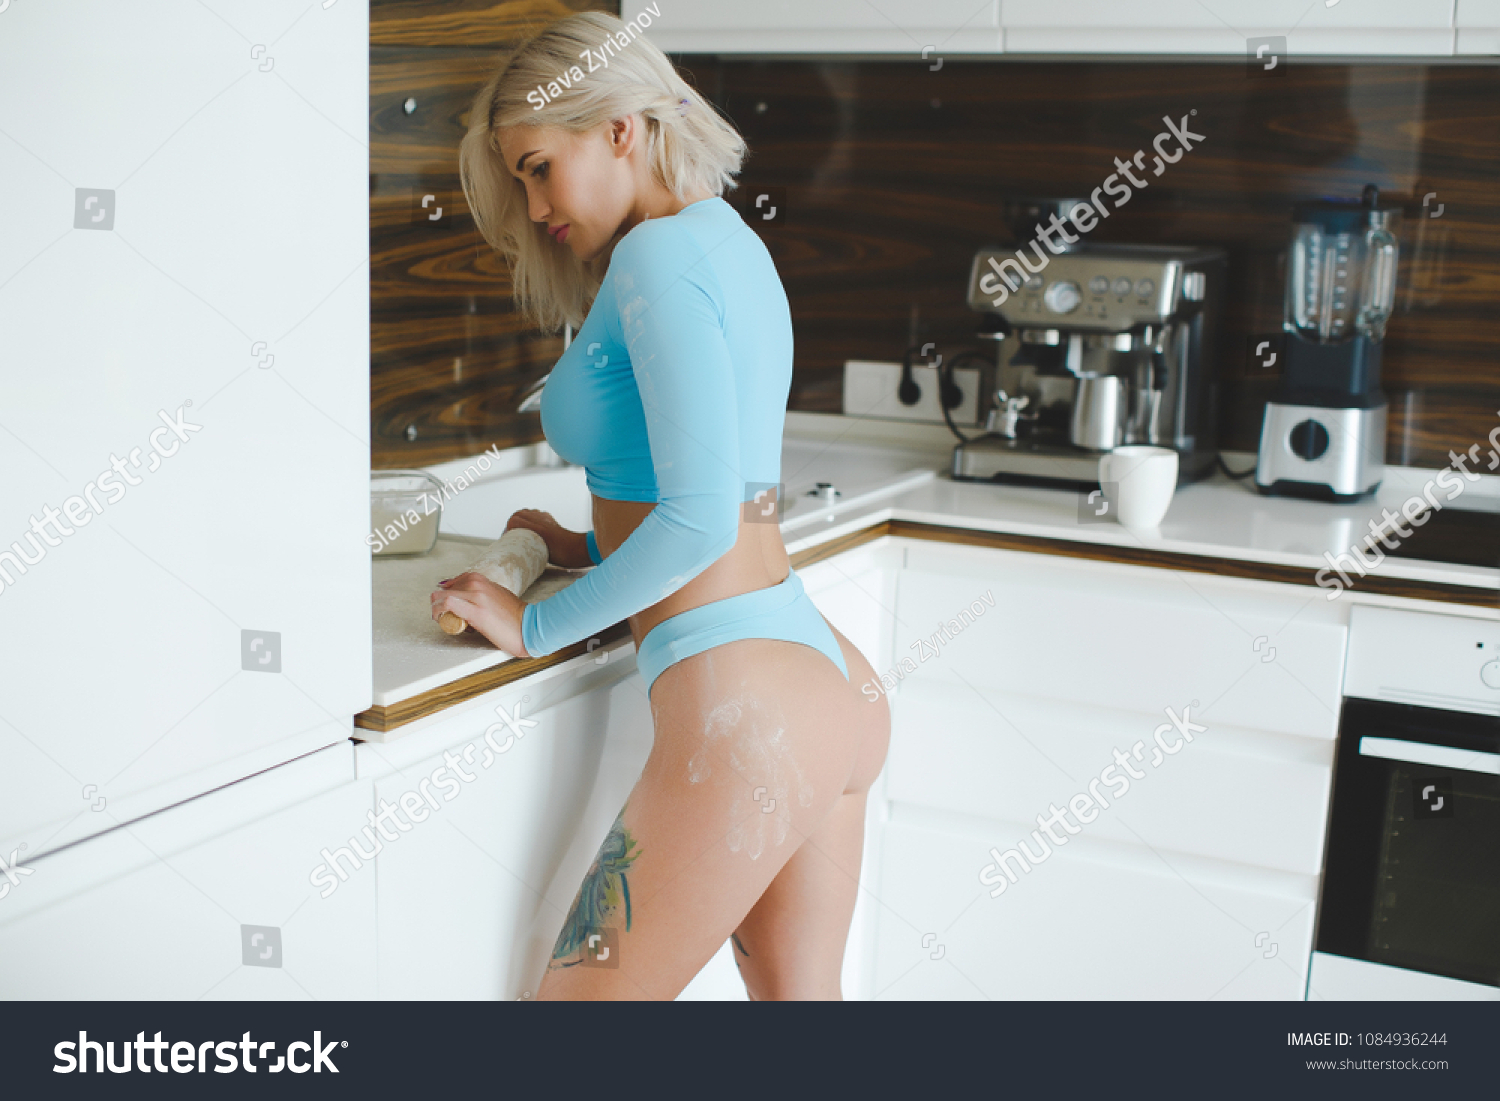 Accept. The Sexy cooking in lingerie something